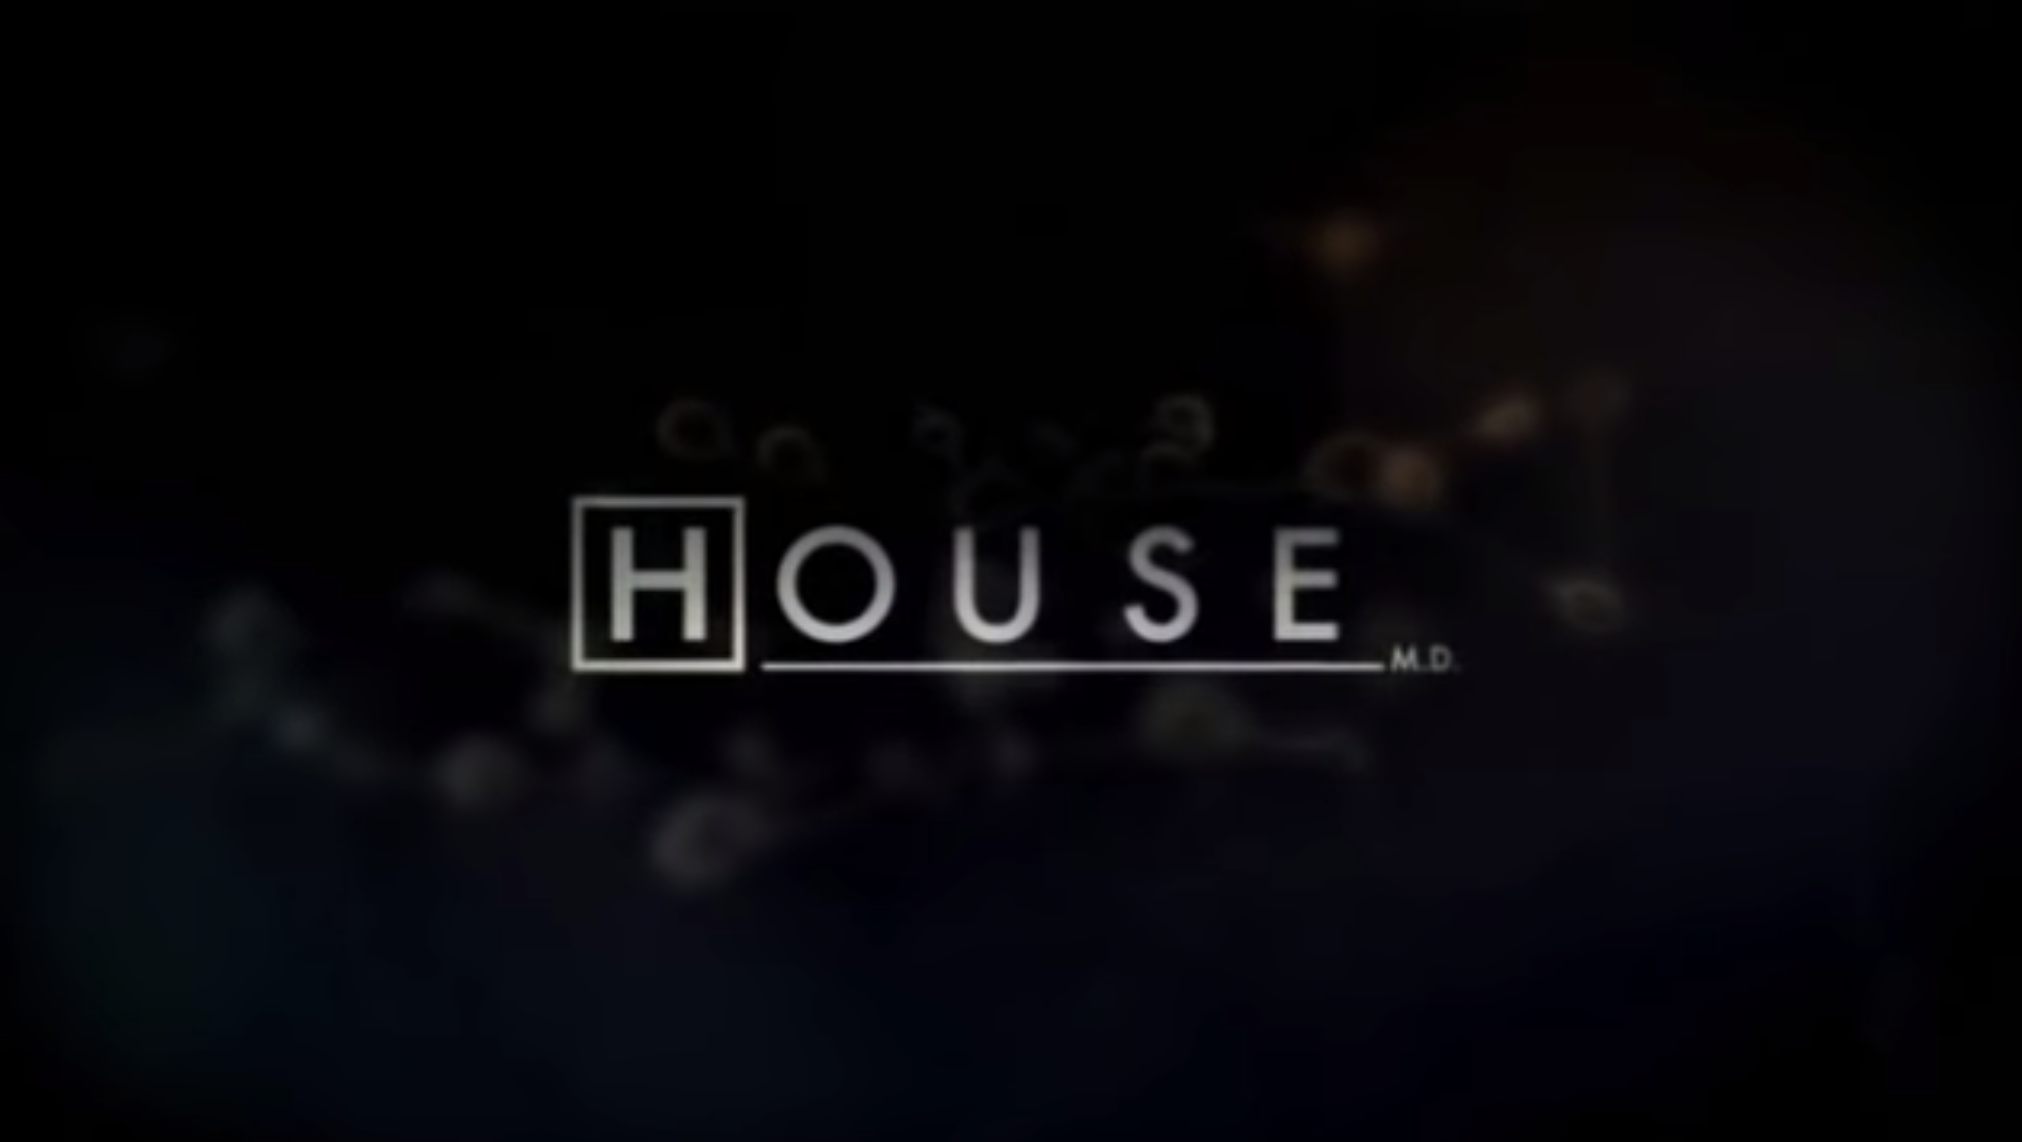 """House M.D."" title card — which is the title of the show over an x-ray."